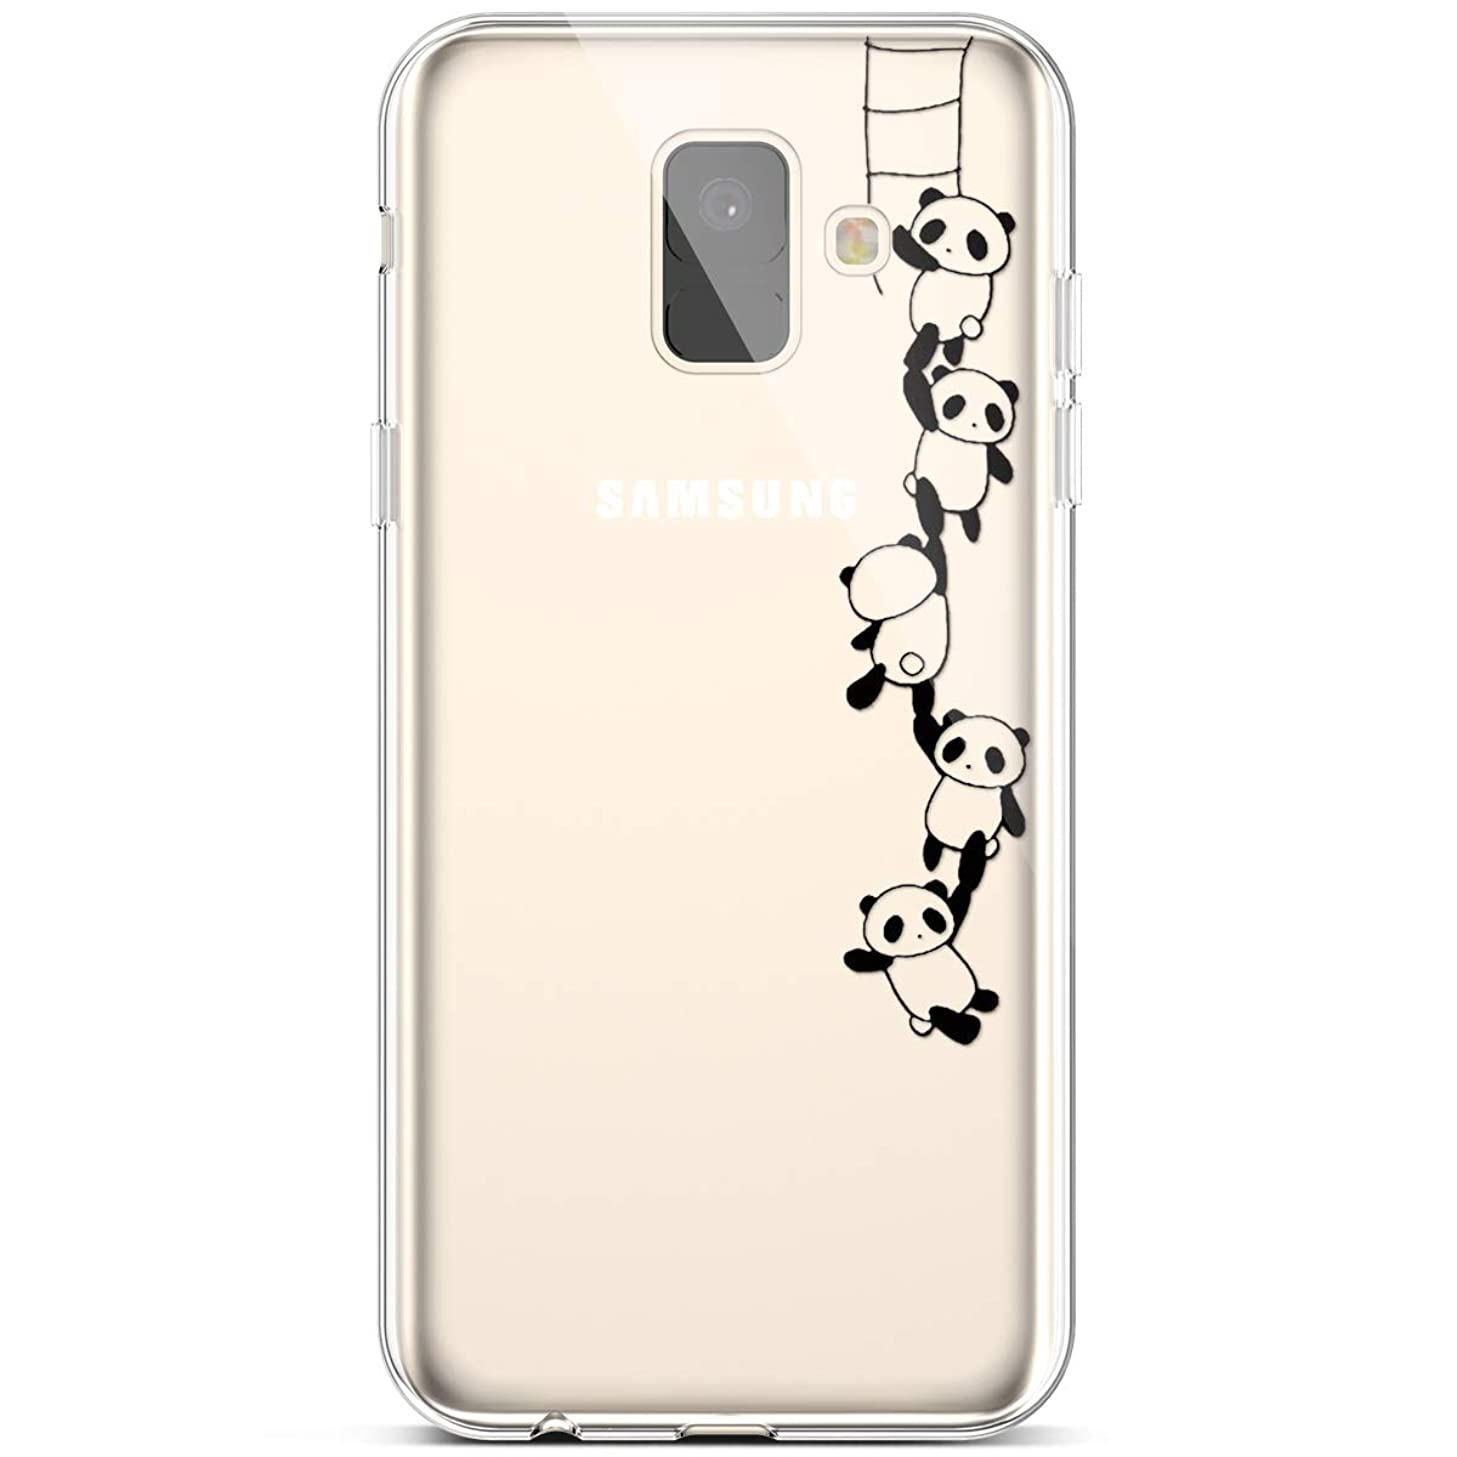 PHEZEN Compatible Galaxy A6 2018 Case,Slim Shockproof Cute Amusing Whimsical Design Crystal Clear Ultra Thin Soft Silicone TPU Cover Bumper Phone Case for Samsung Galaxy A6 2018,Panda